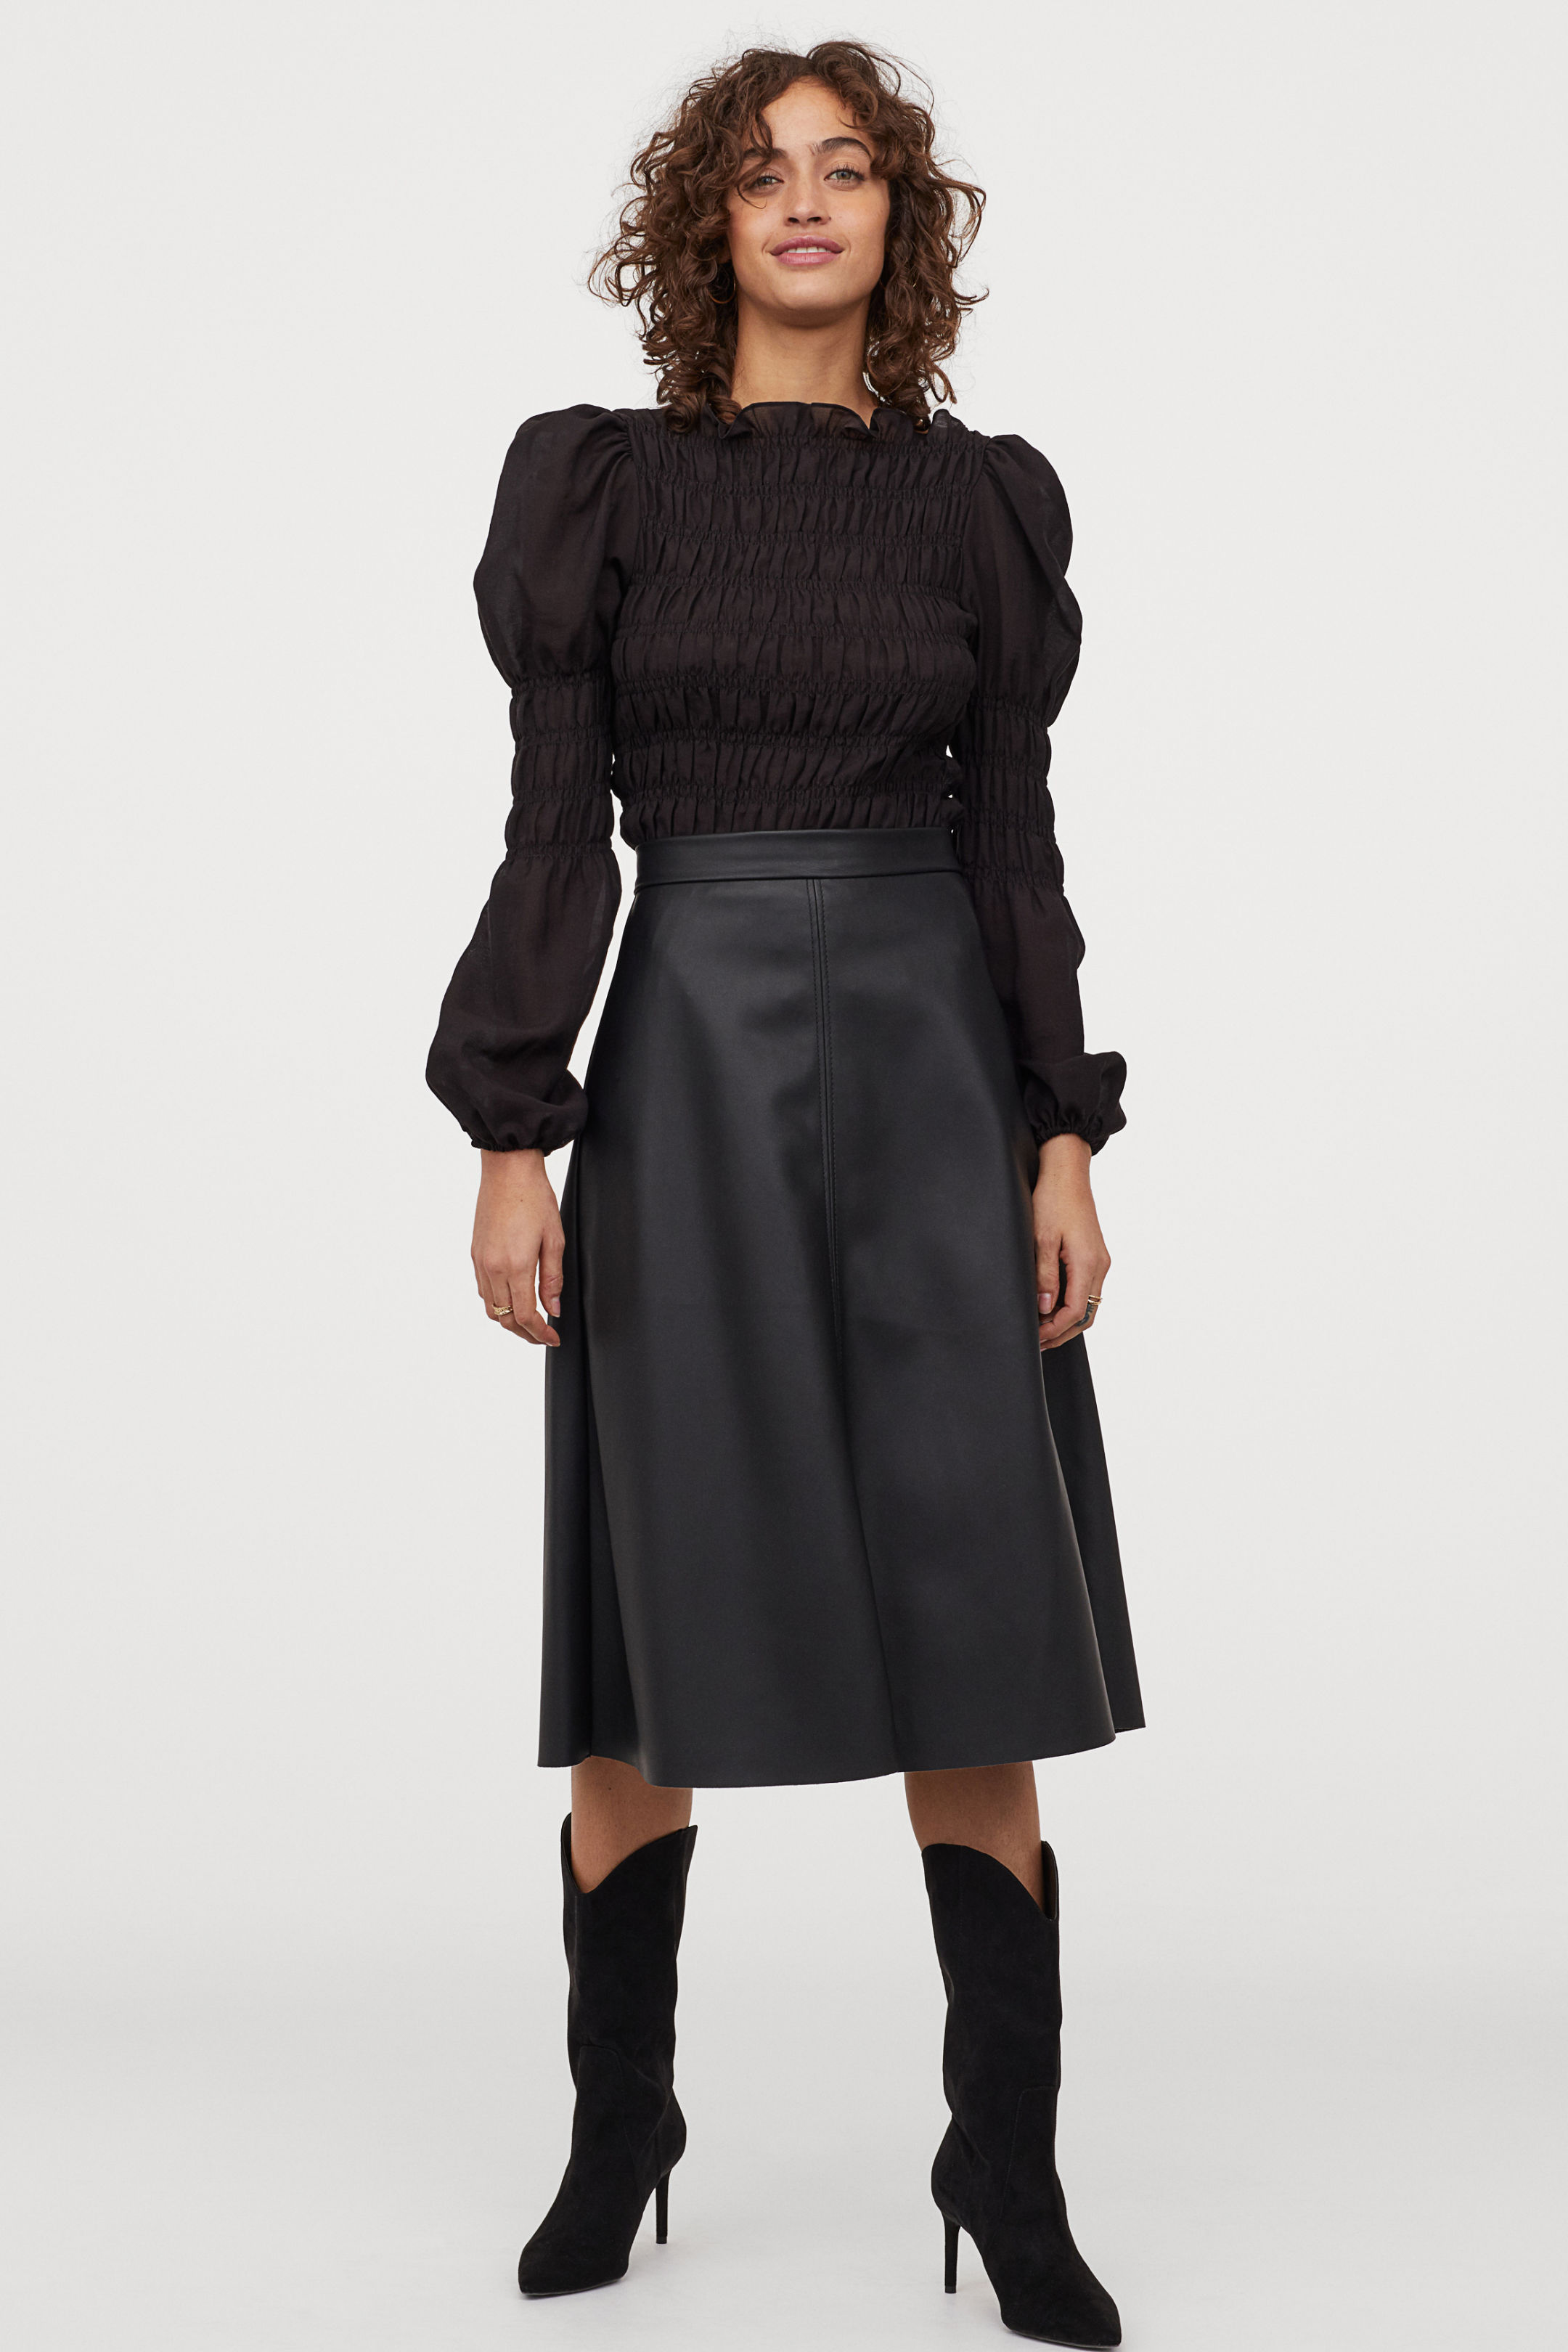 H&M Imitation leather skirt £19.99